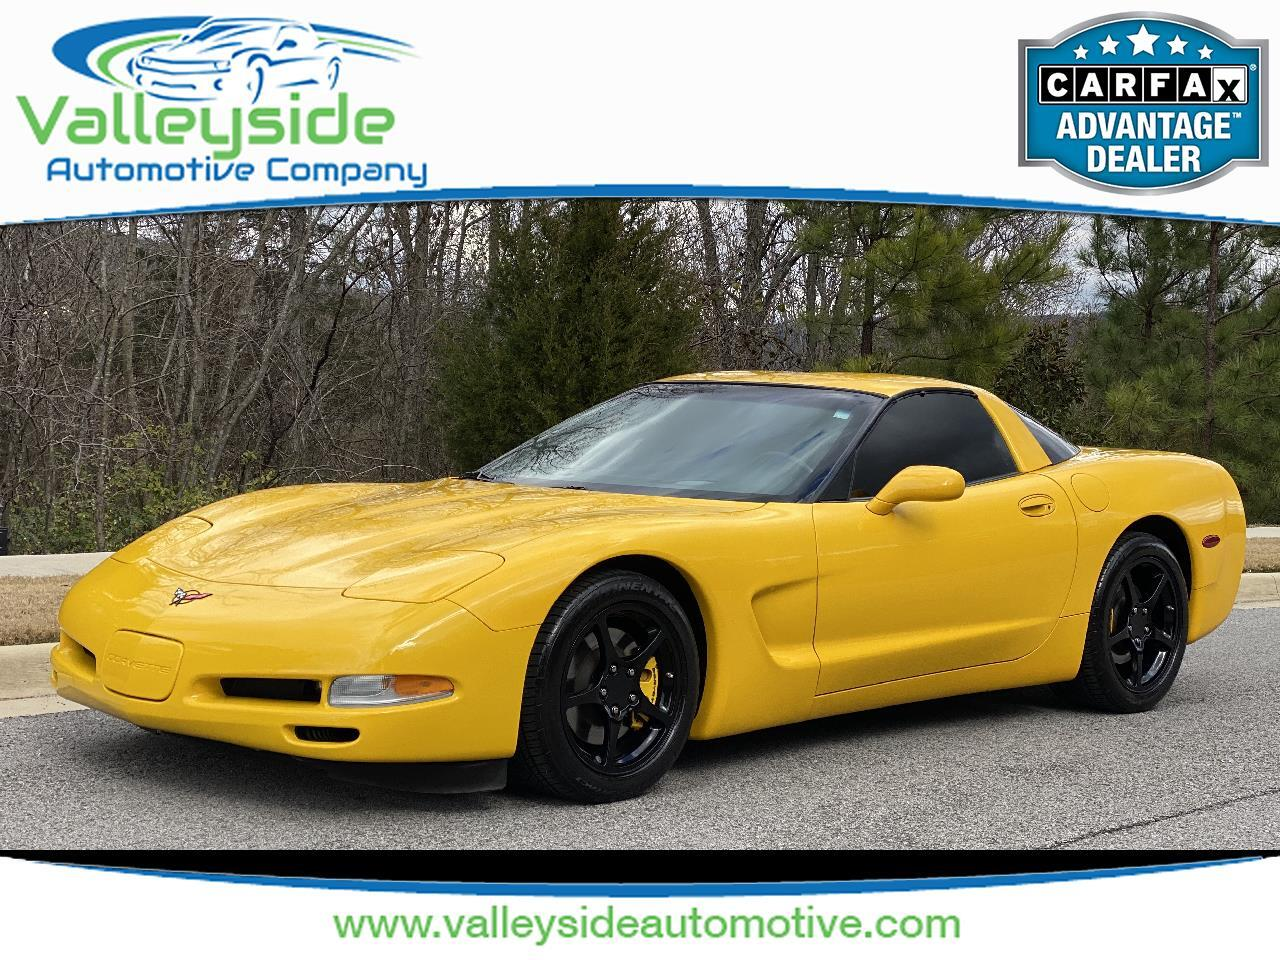 Chevrolet Corvette Coupe 2004